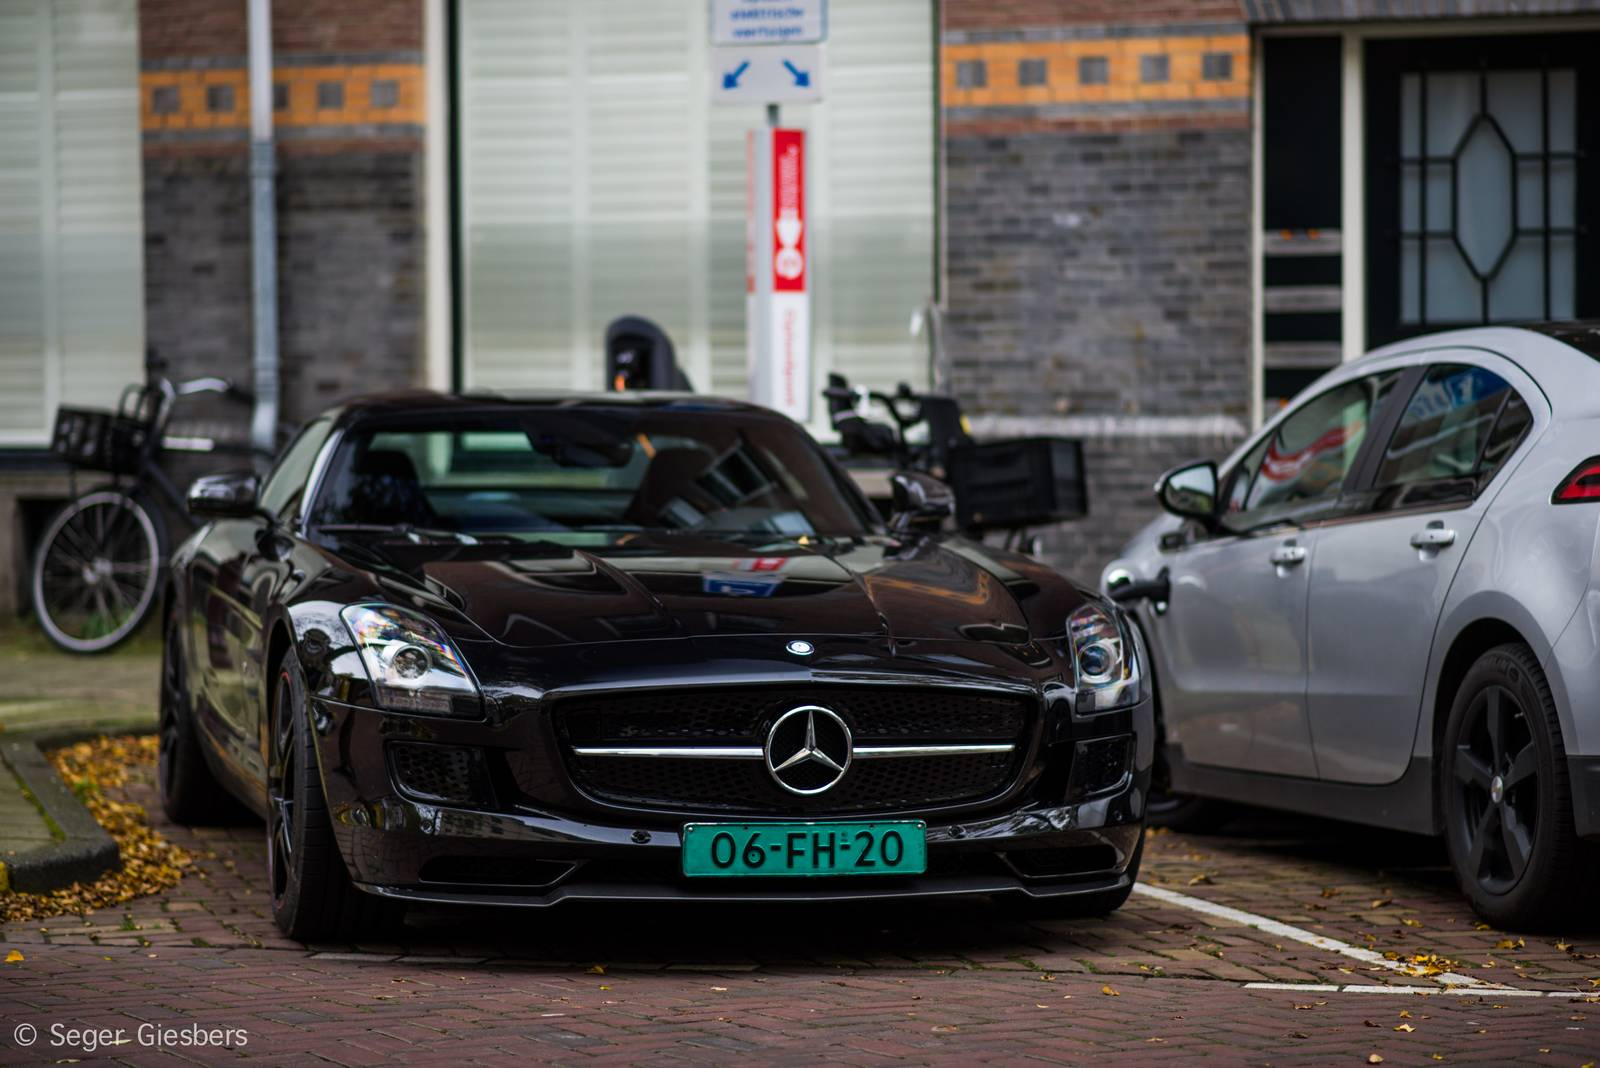 mercedes benz sls amg electric drive spotted in amsterdam